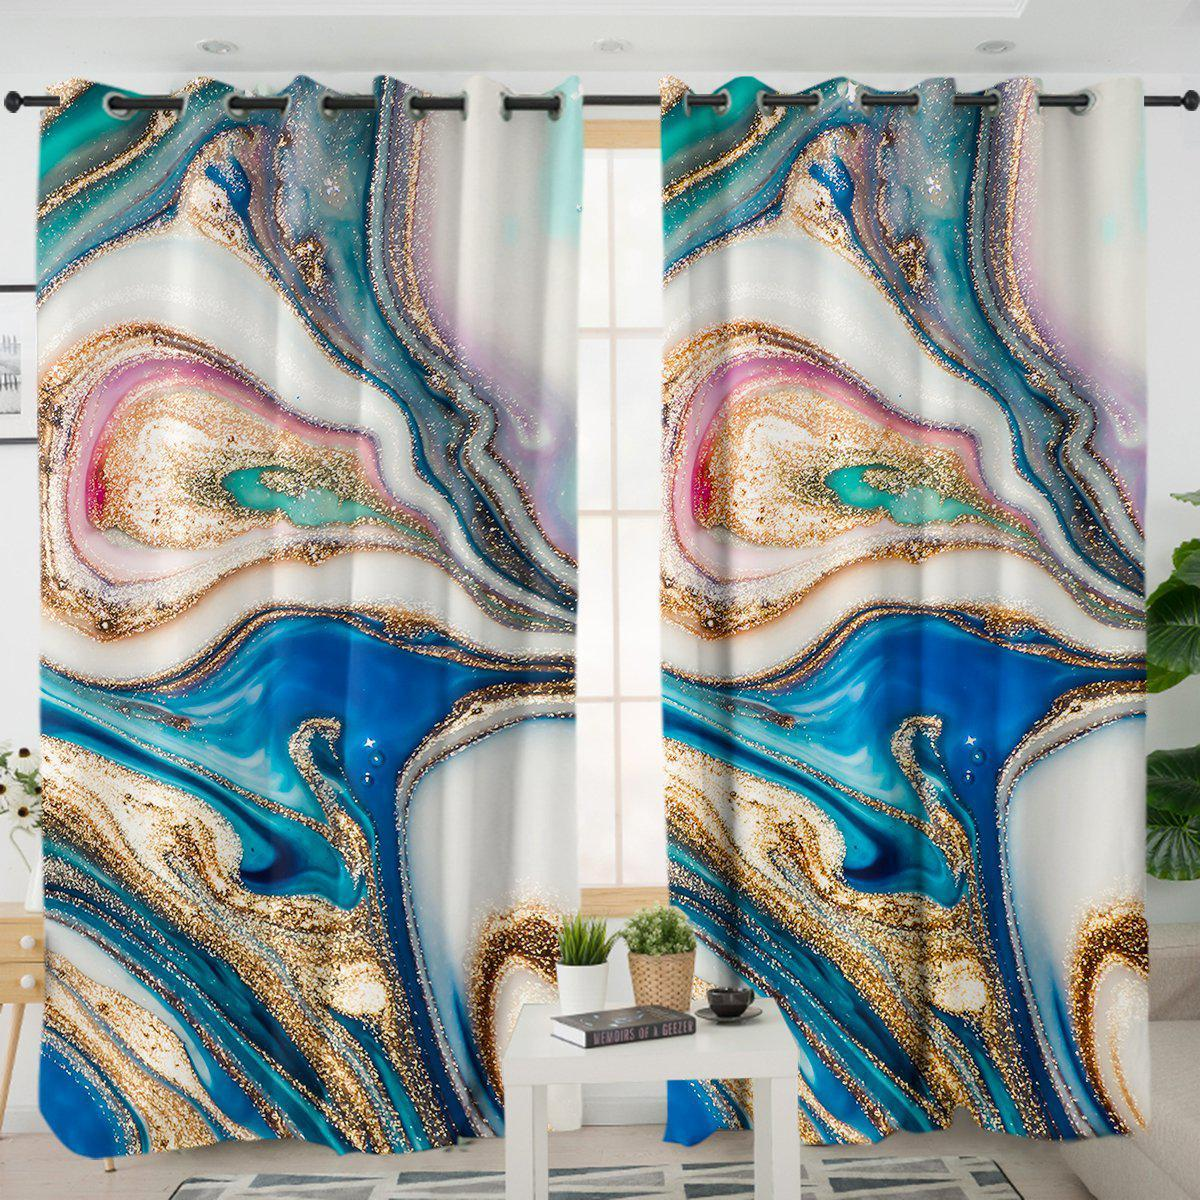 Copacabana Curtains-Coastal Passion